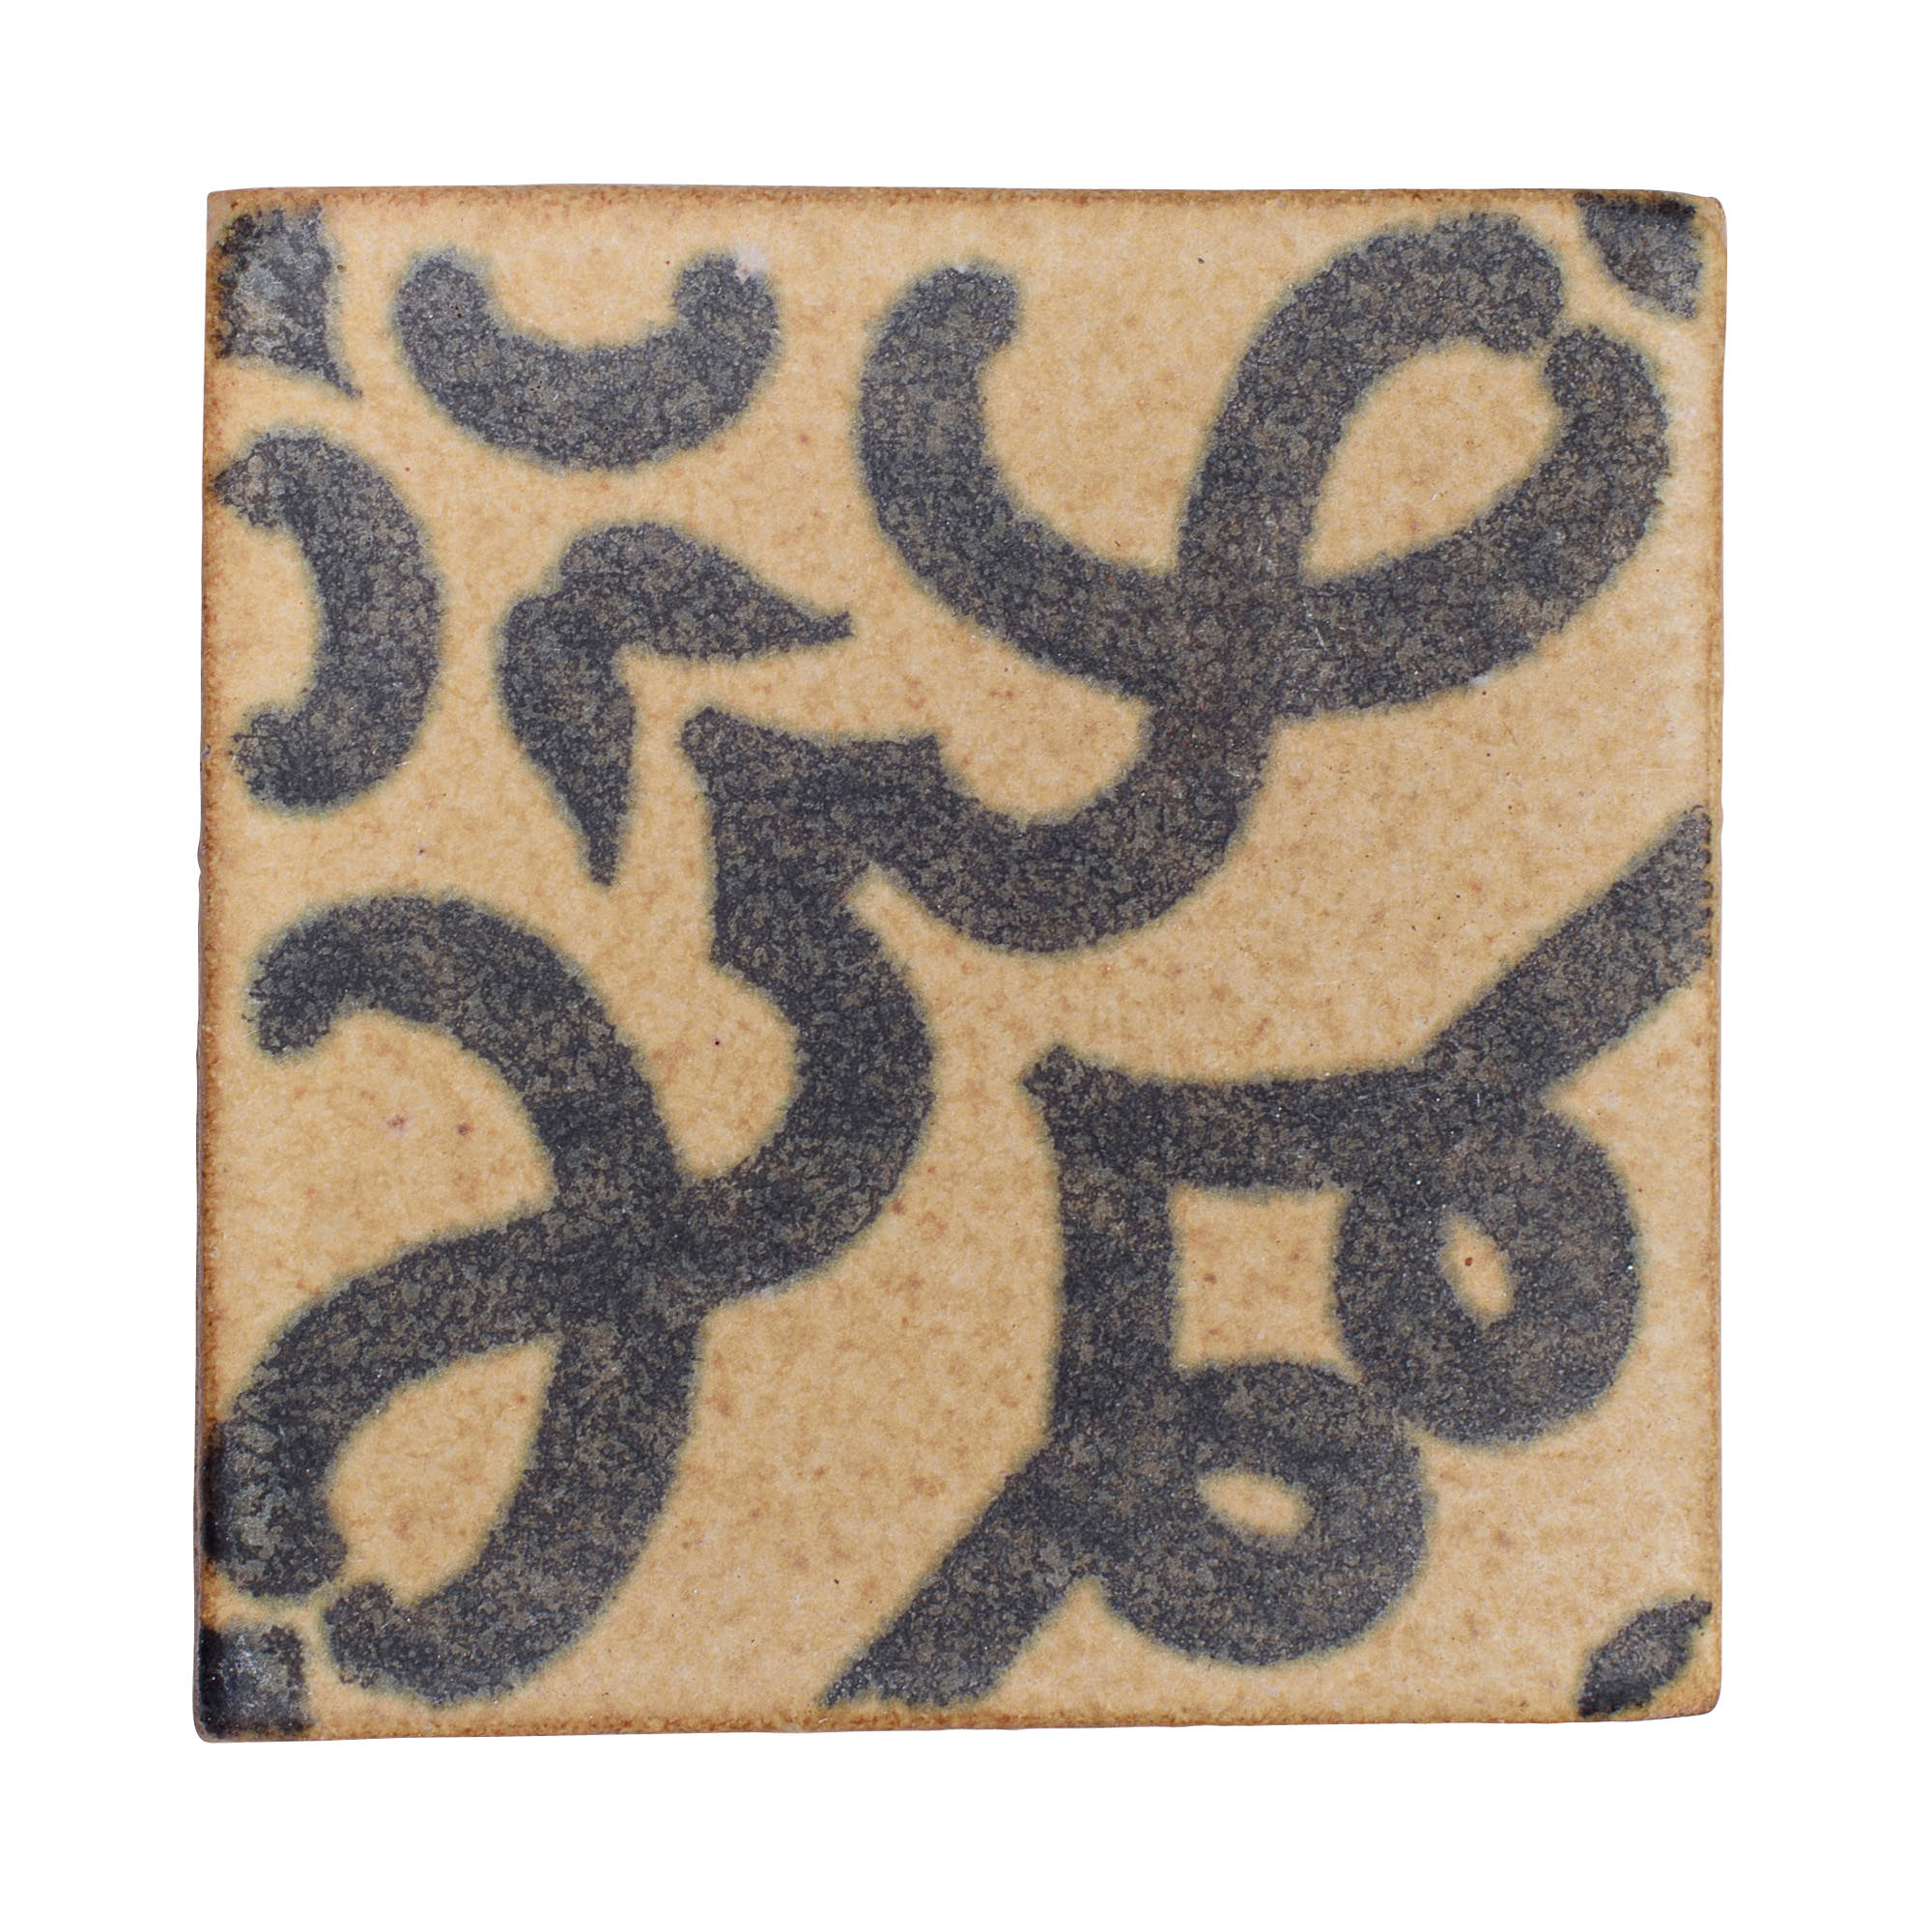 silk road decorative high fire terra cotta tile - Terra Cotta Tile Home 2016